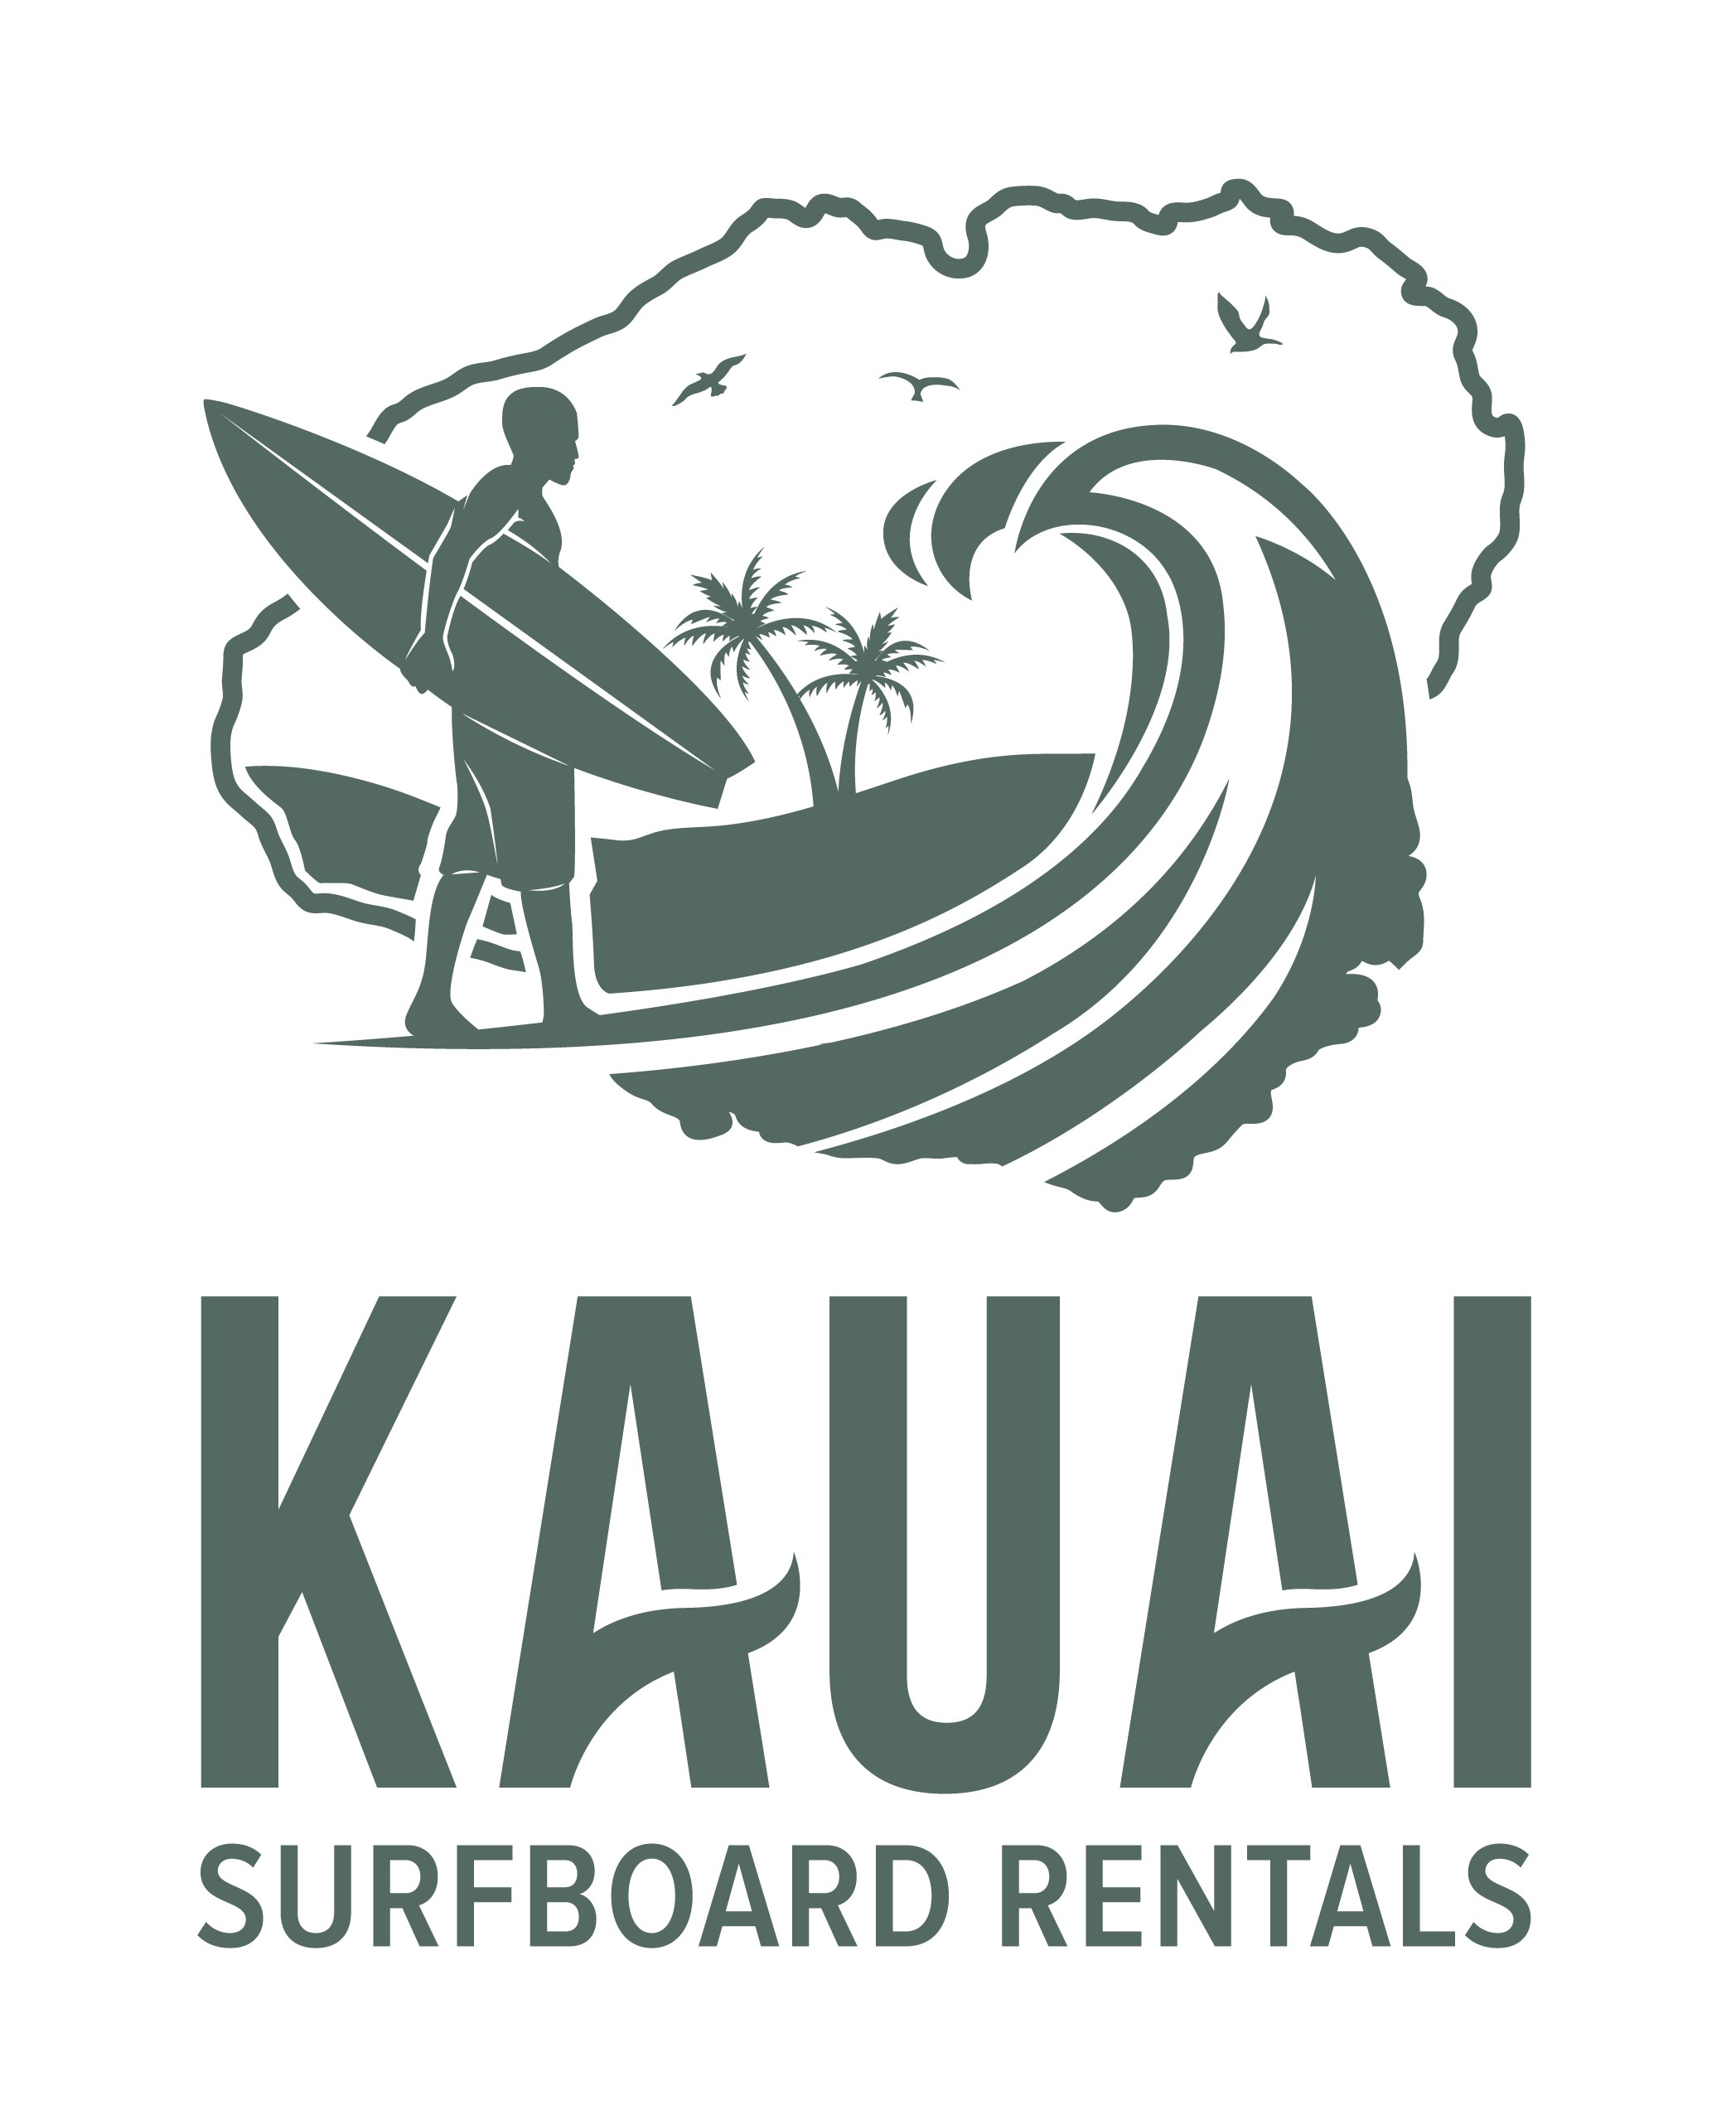 Kauai Surfboard Rentals needs a cool logo